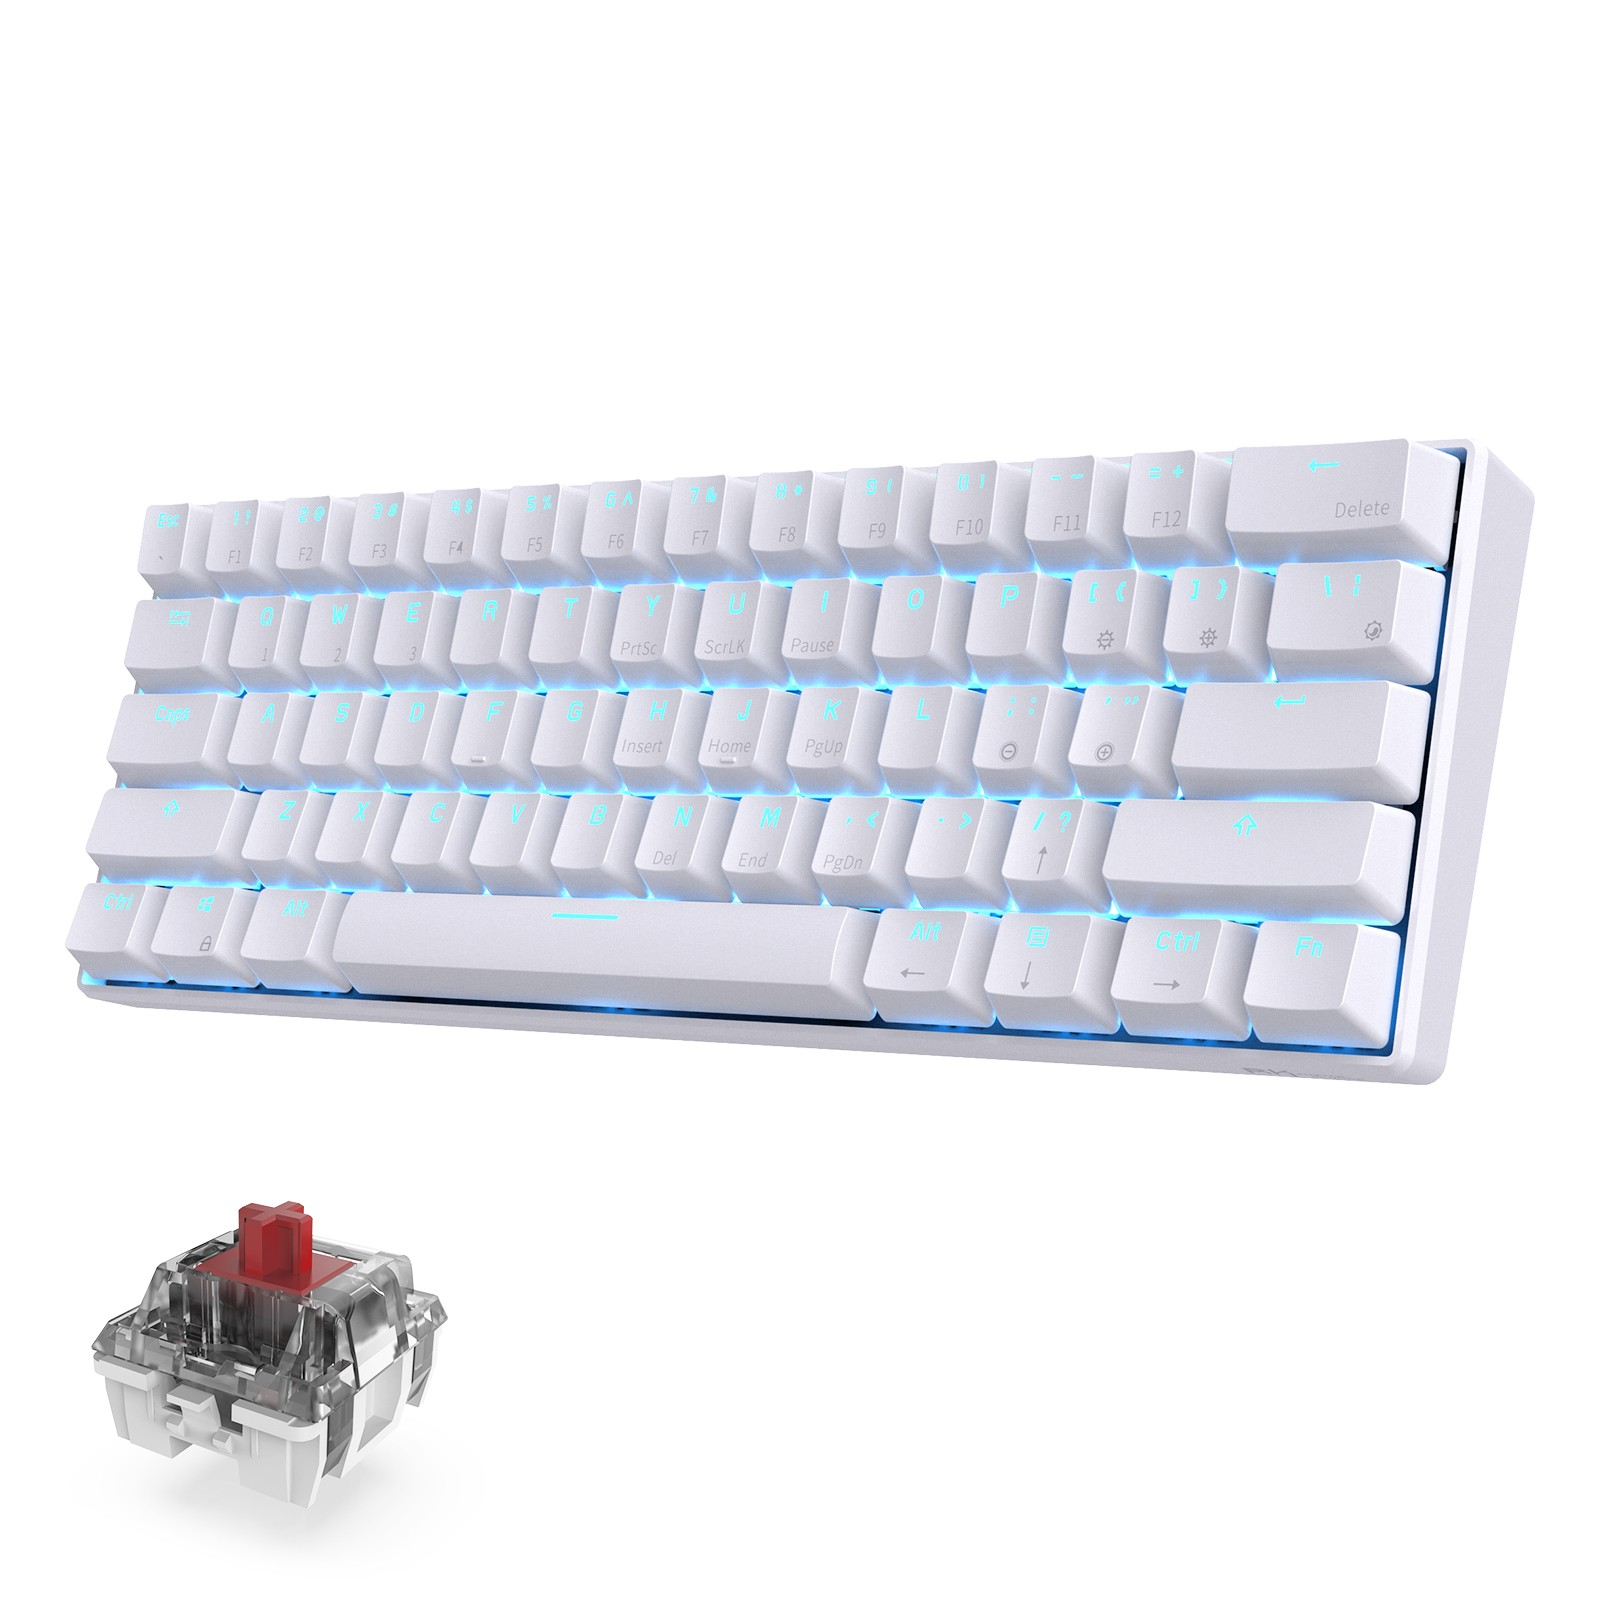 RK ROYAL KLUDGE RK61 Wireless 60% Mechanical Gaming Keyboard, Red Switch